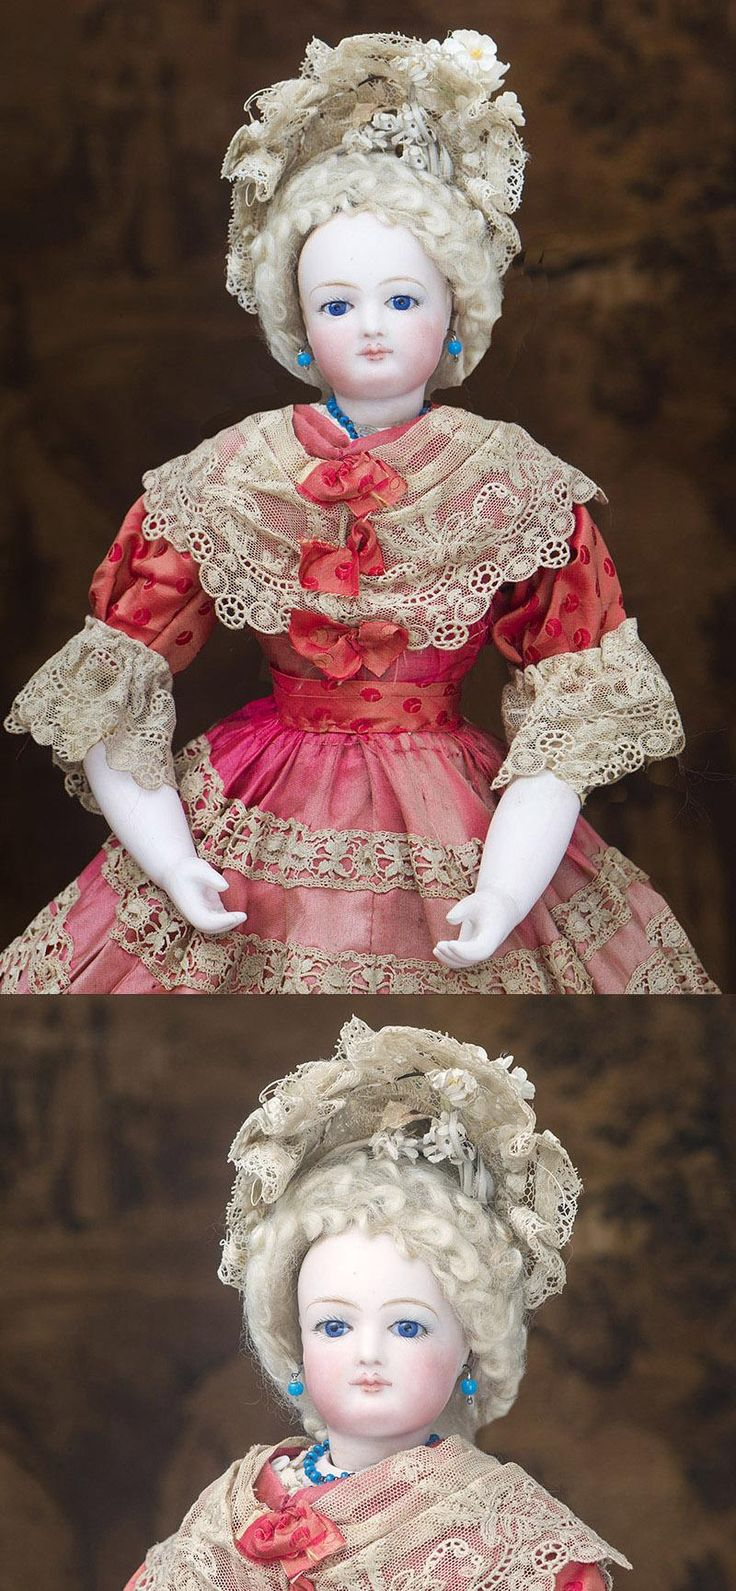 18in Very Beautiful Antique French Fashion Gaultier Doll with rare from respectfulbear on Ruby Lane